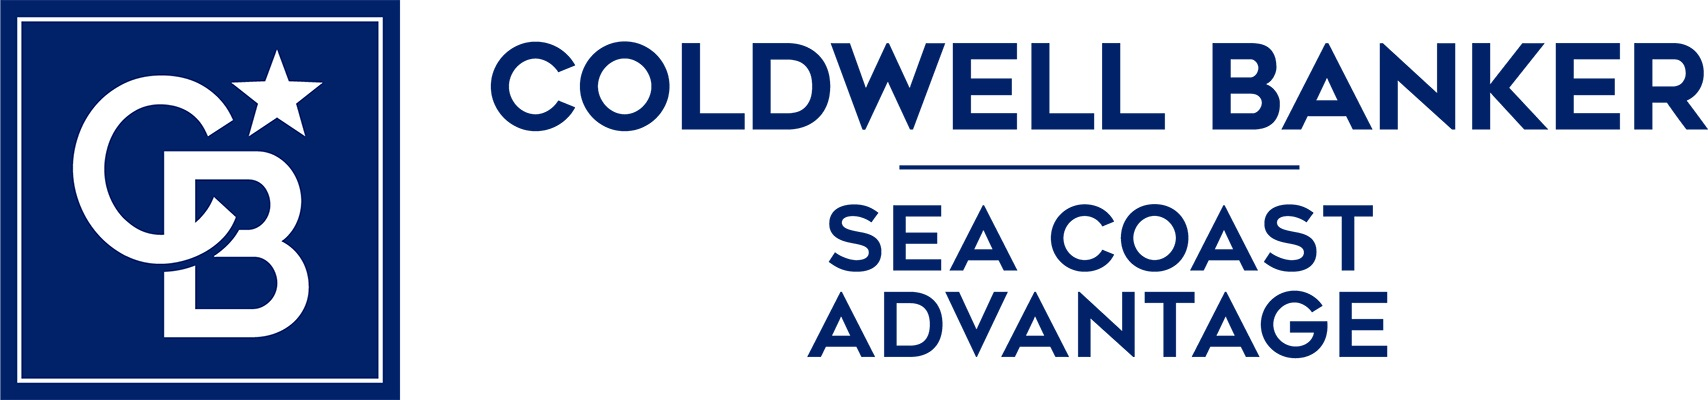 Jason Lloyd - Coldwell Banker Sea Coast Advantage Realty Logo